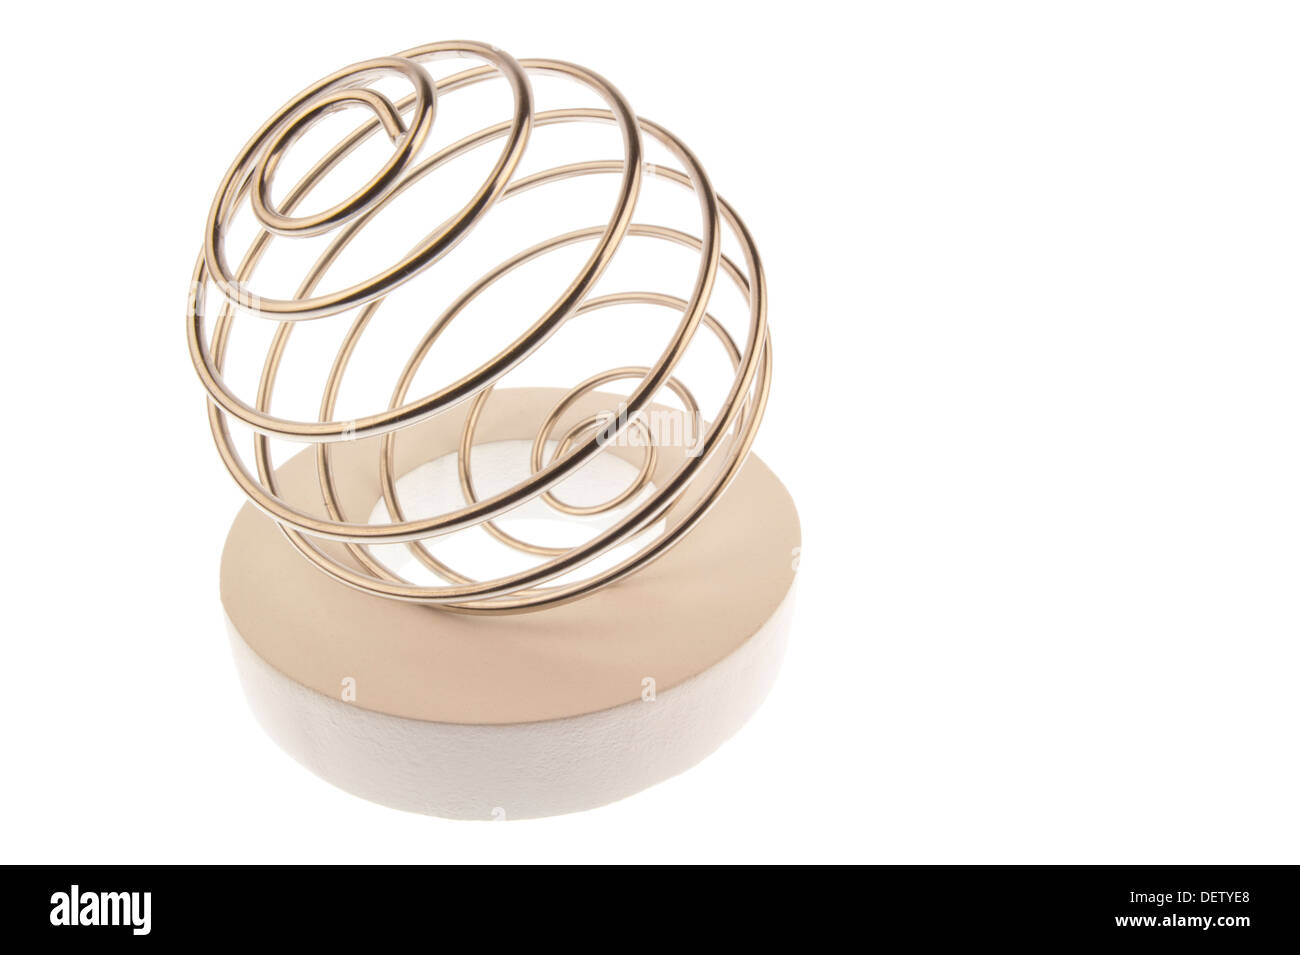 Iron wire tangled up into a spiral ball,lying tilted to the left on a white ring Stock Photo